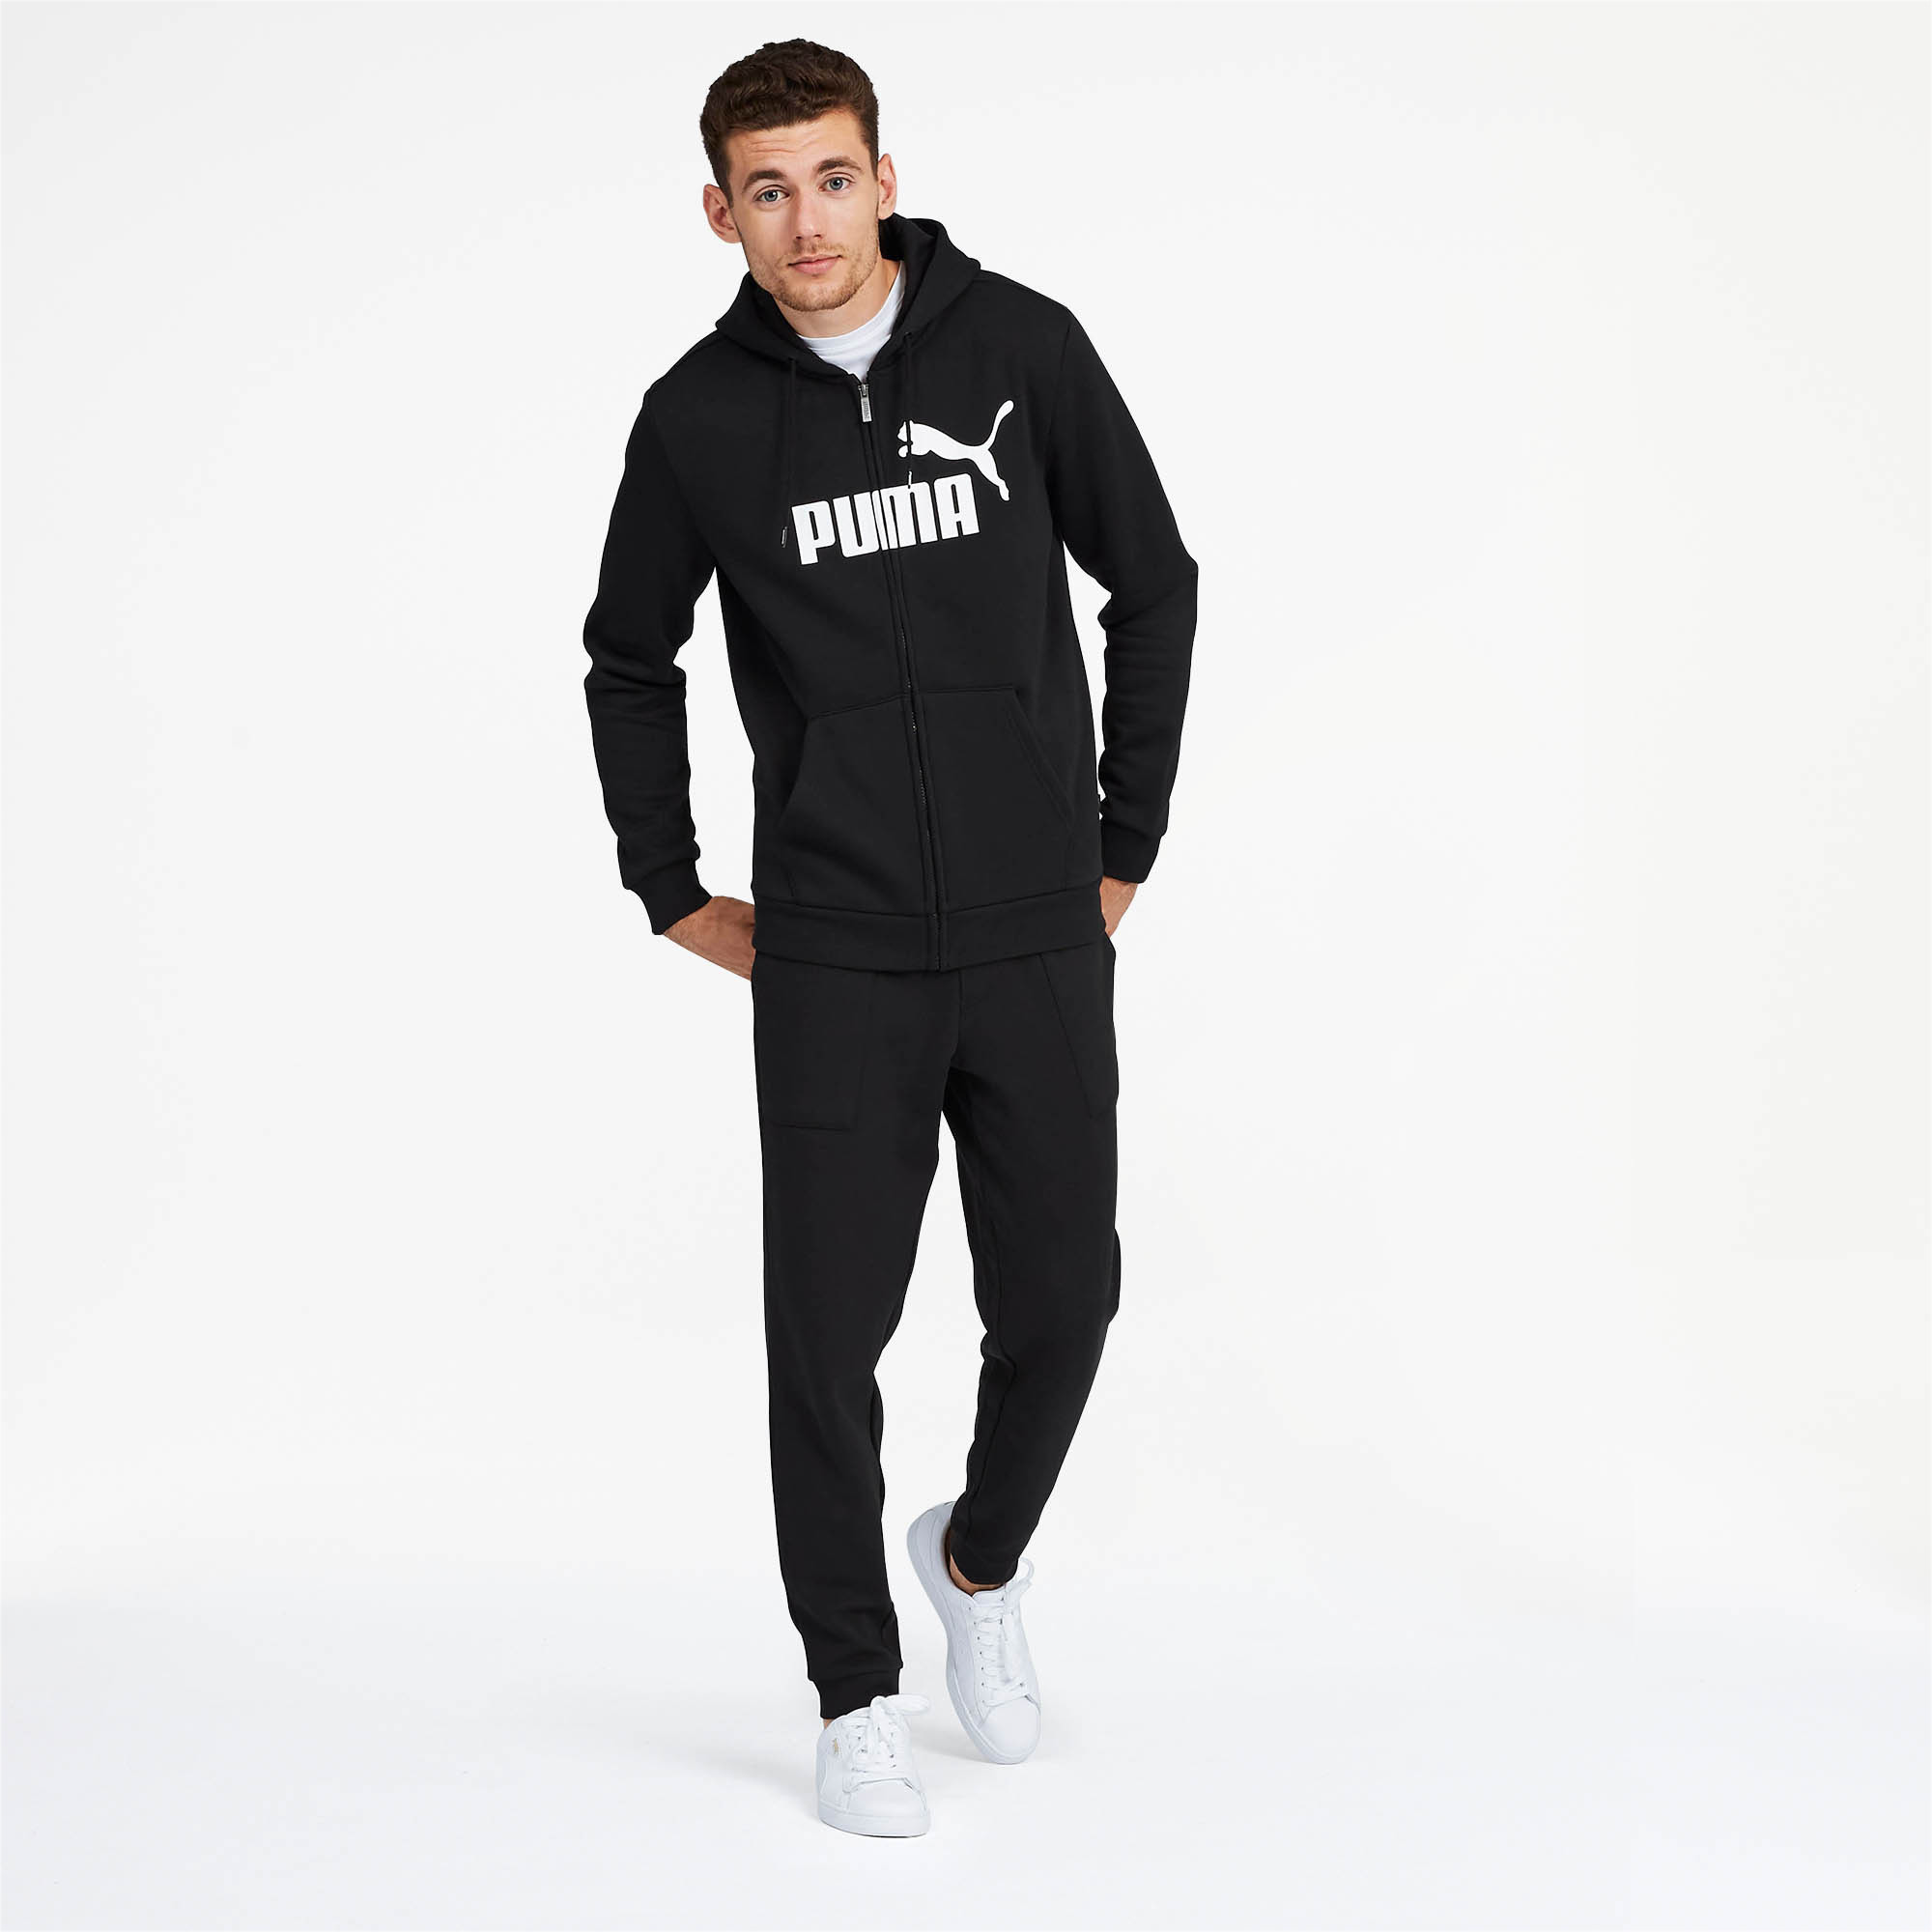 PUMA-Essentials-Men-039-s-Hooded-Fleece-Logo-Jacket-Men-Sweat-Basics thumbnail 6